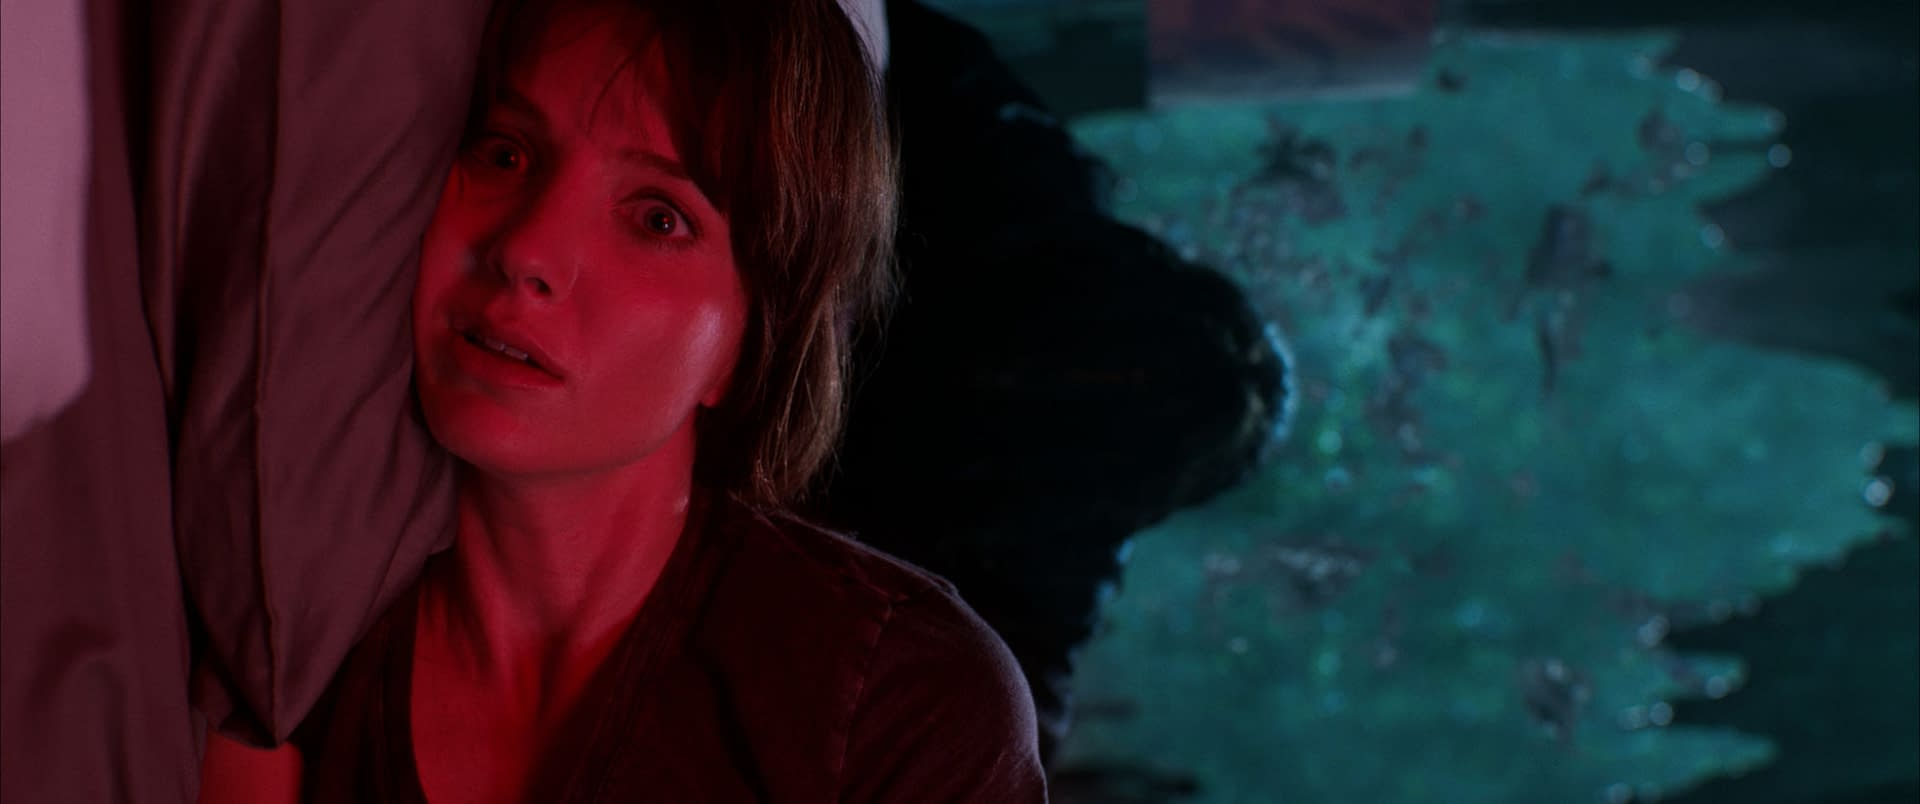 Malignant: Three New Images From James Wan's Latest To Spook You